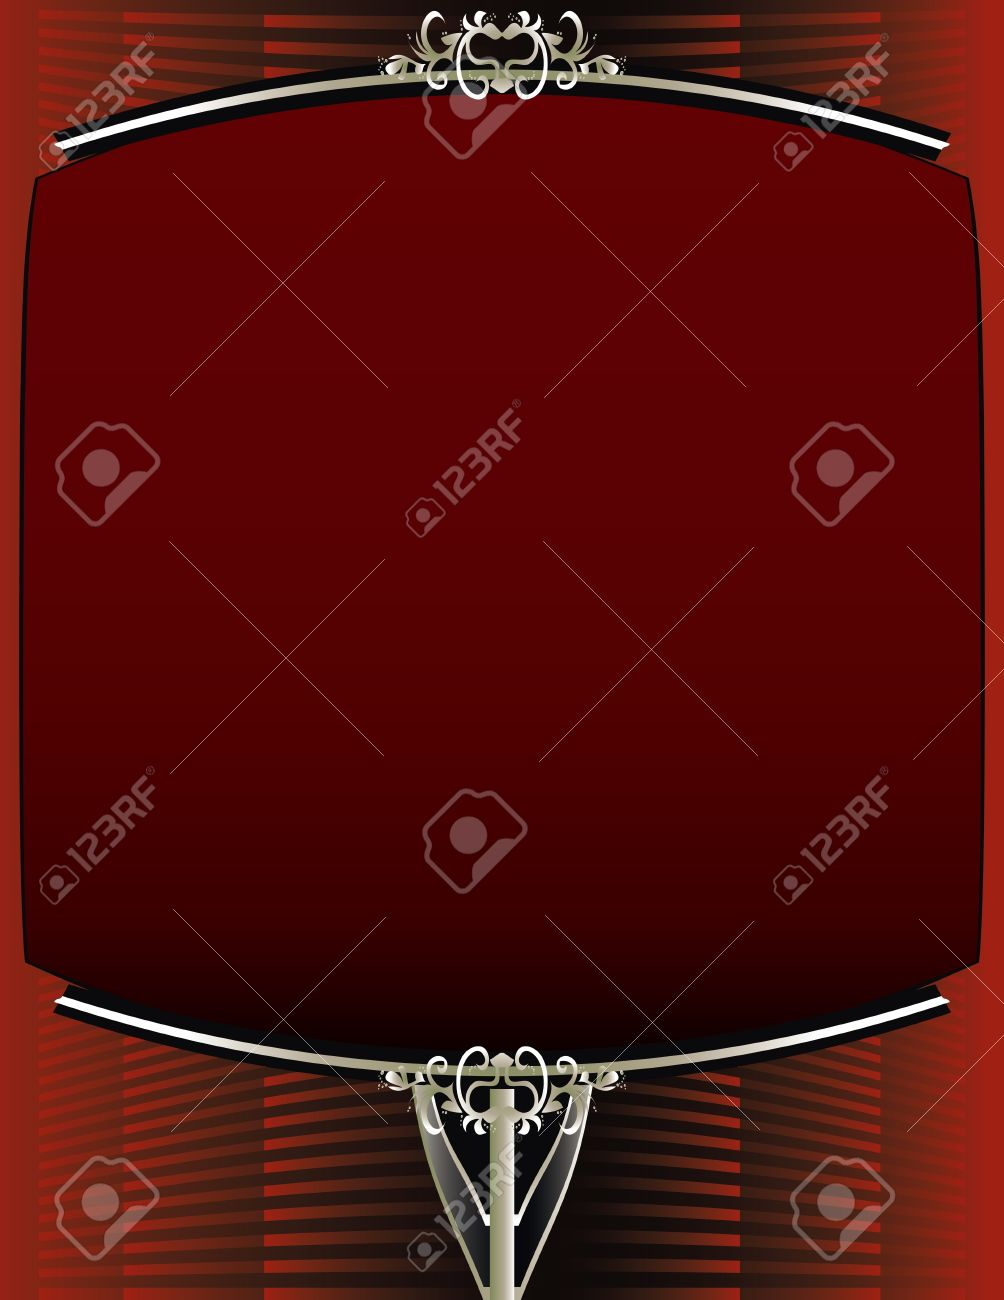 A red background with and elegant blank red and silver frame design Stock Vector - 7315155